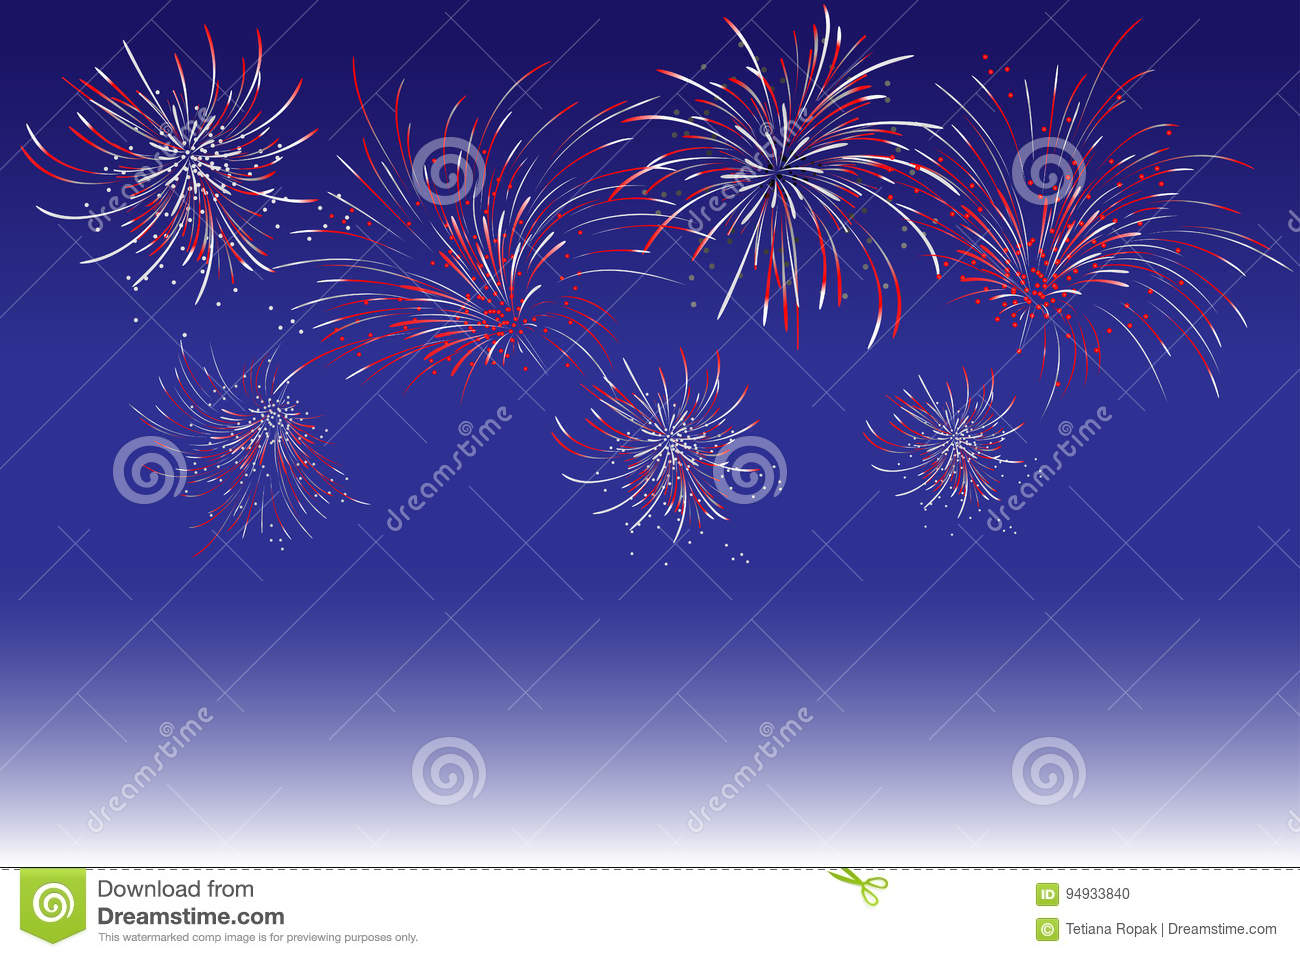 Rainbow Fireworks Celebration Colorful Abstract Image With: Fireworks Cartoons, Illustrations & Vector Stock Images